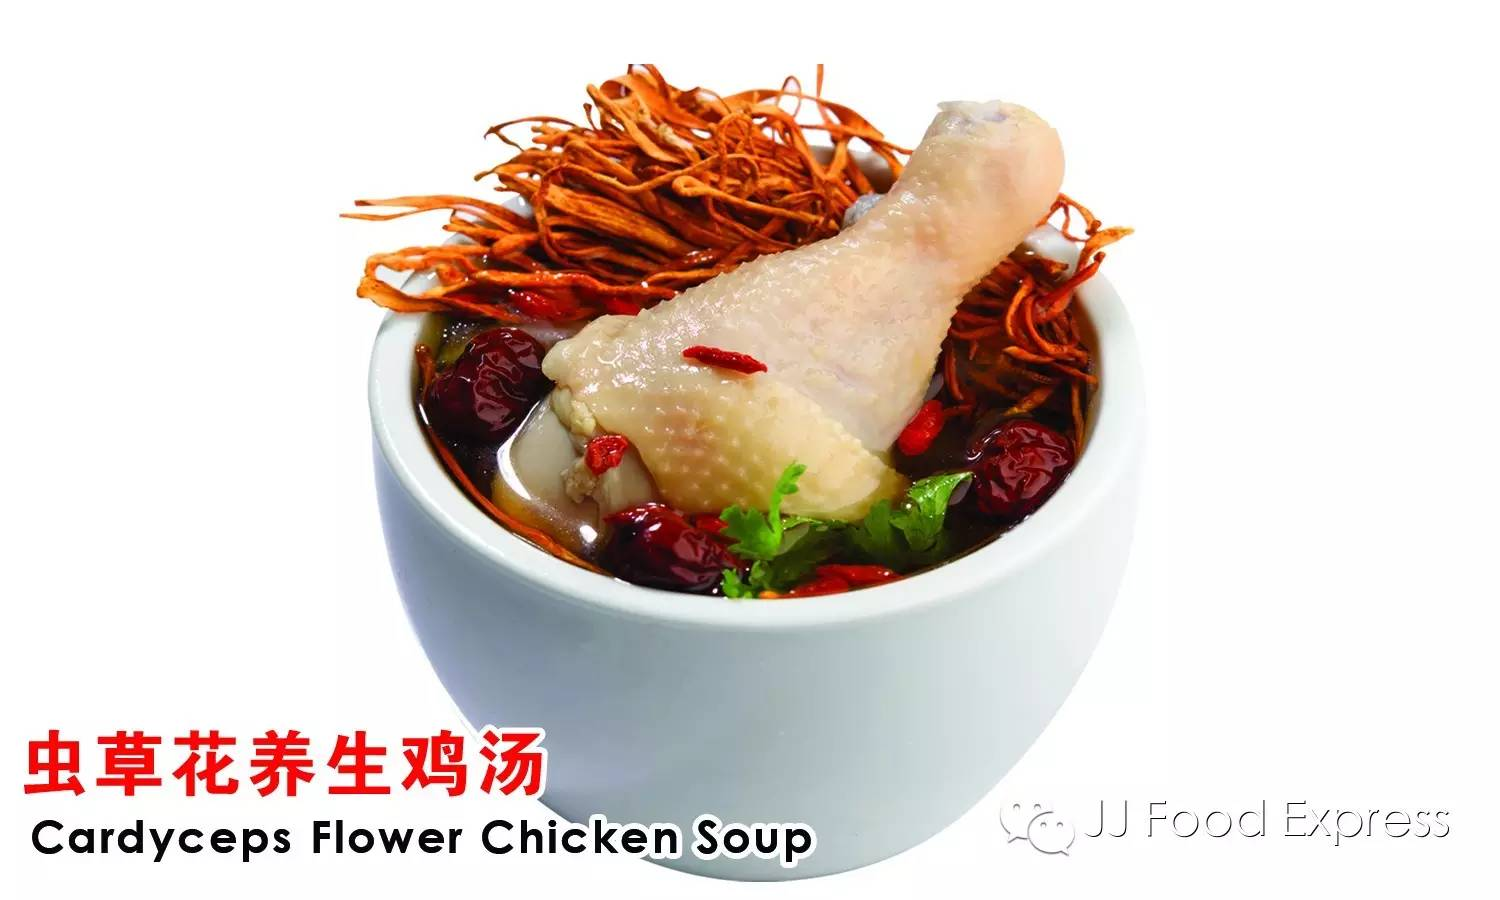 cardyceps flower chicken soup